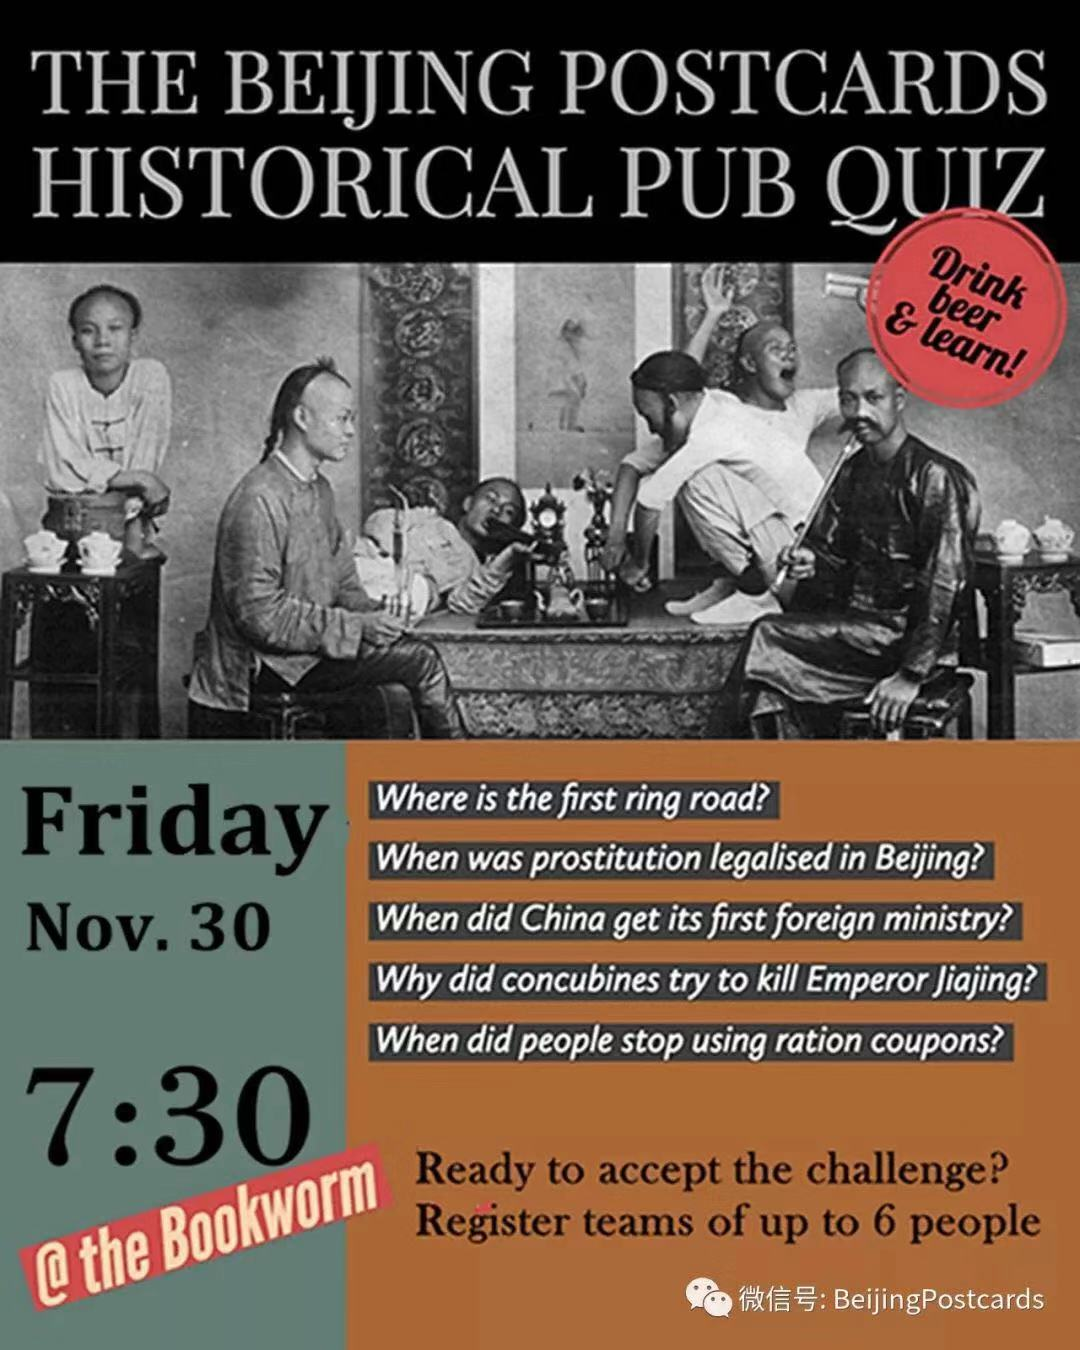 The Bejiing Postcards Historical Pub Quiz